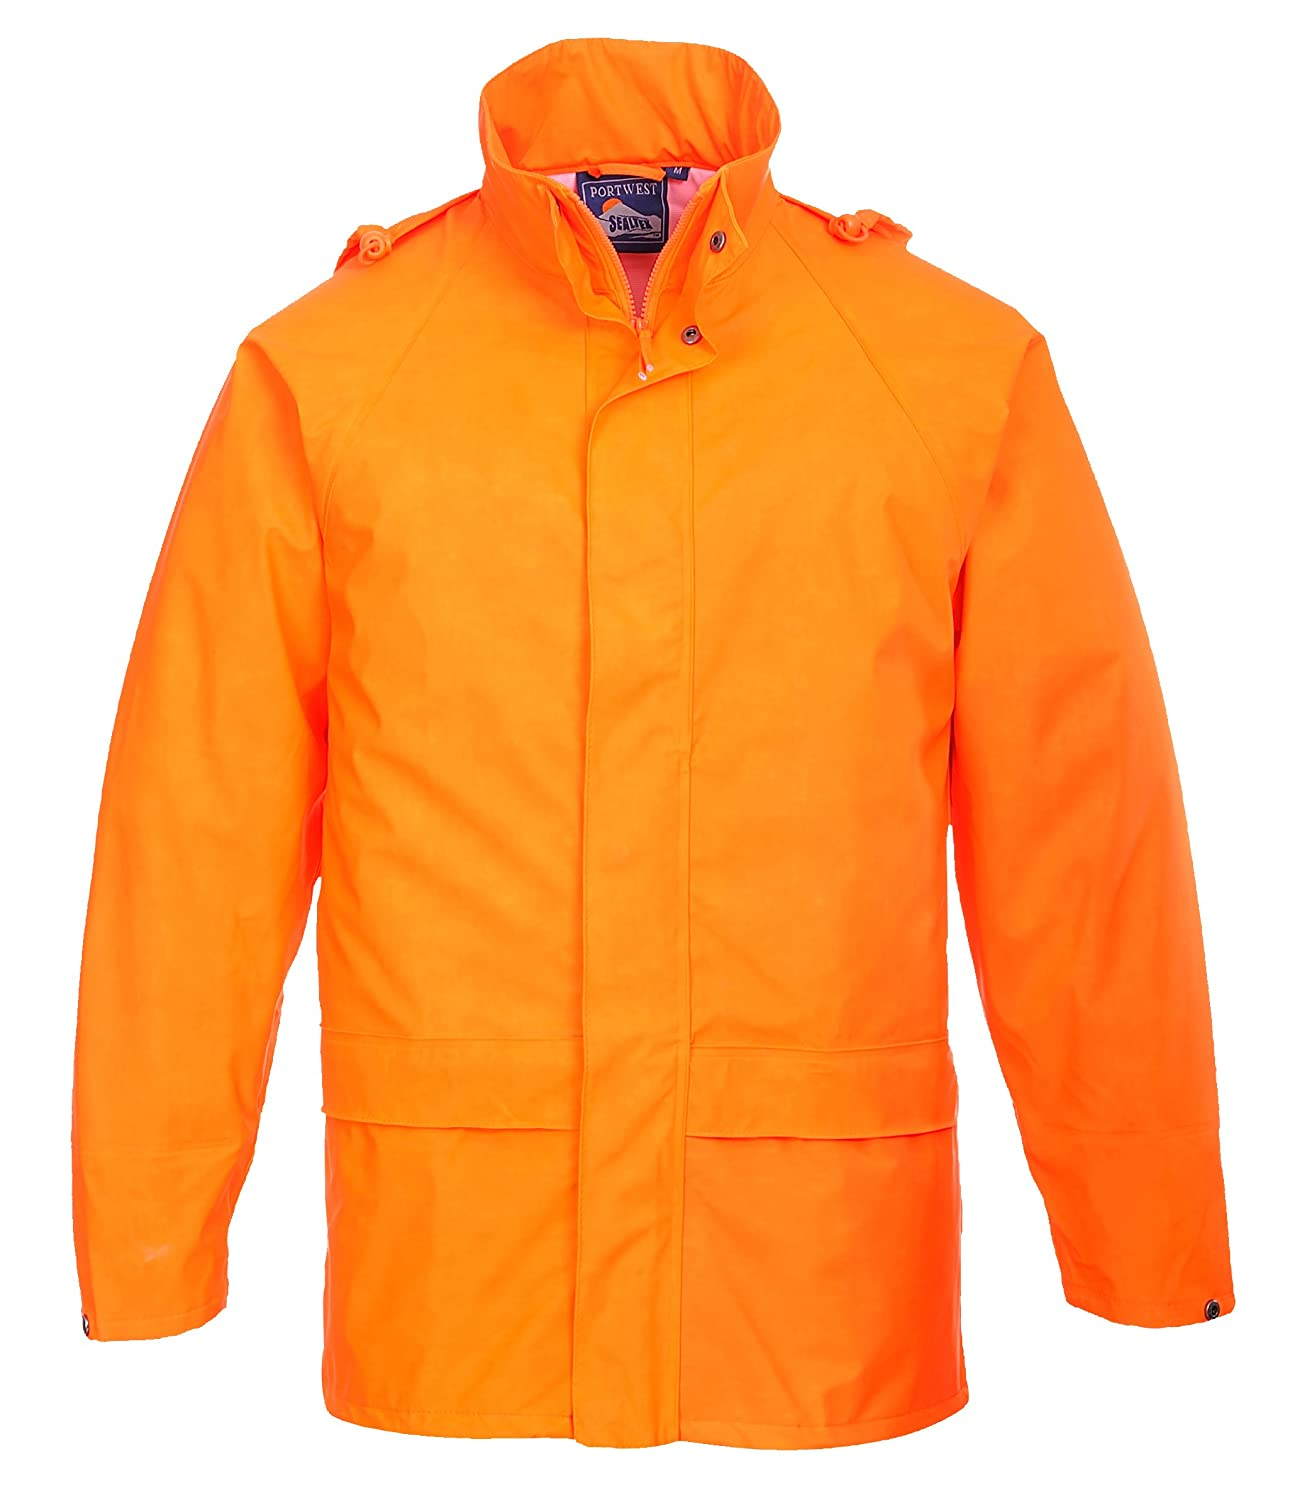 Portwest S450 chaqueta Sealtex talla 3 XL color Amarillo